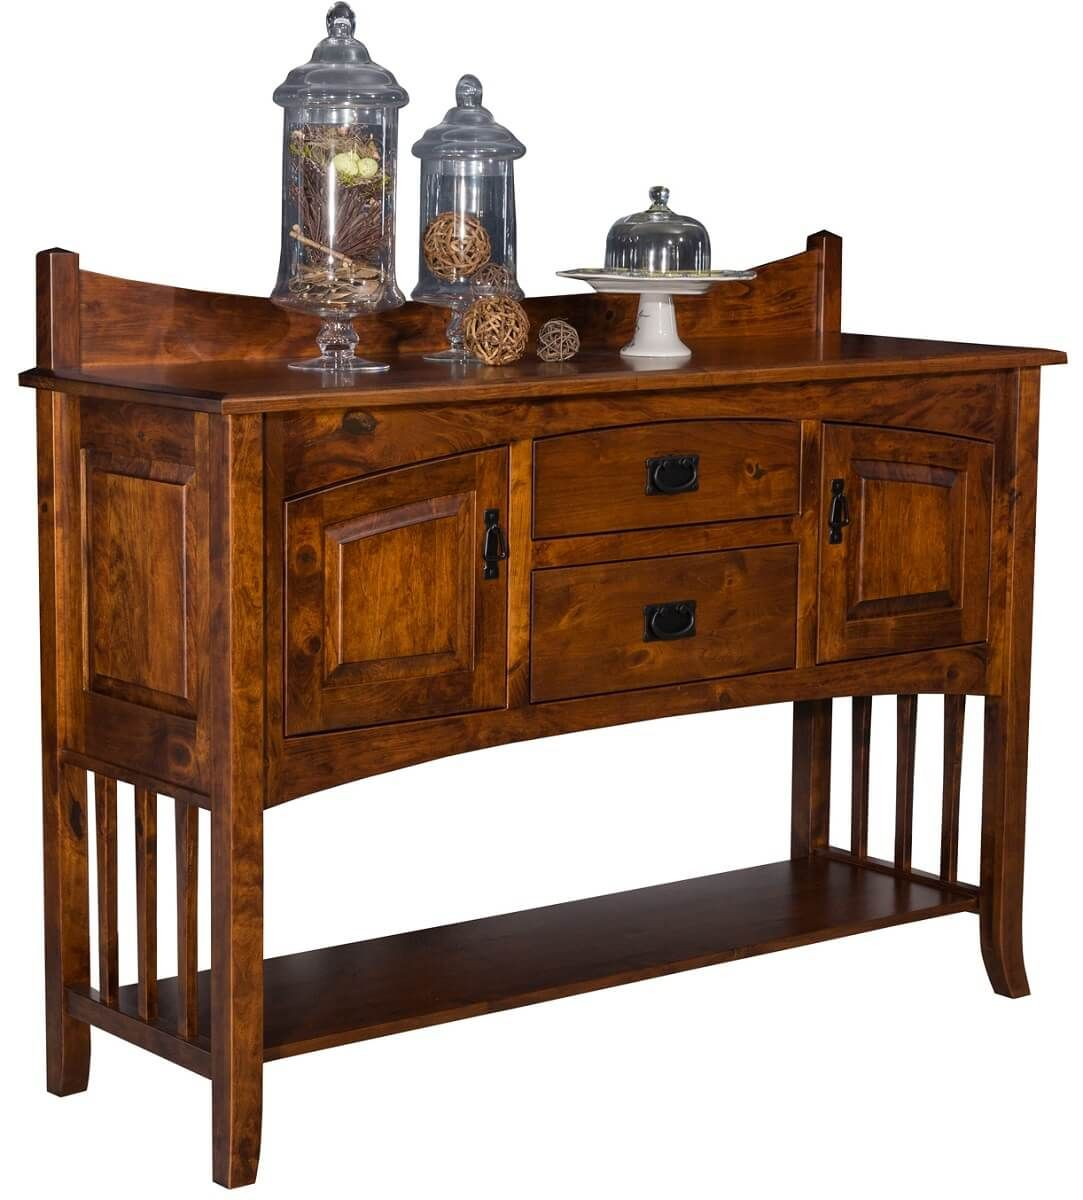 Mountain Park Buffet in Rustic Cherry